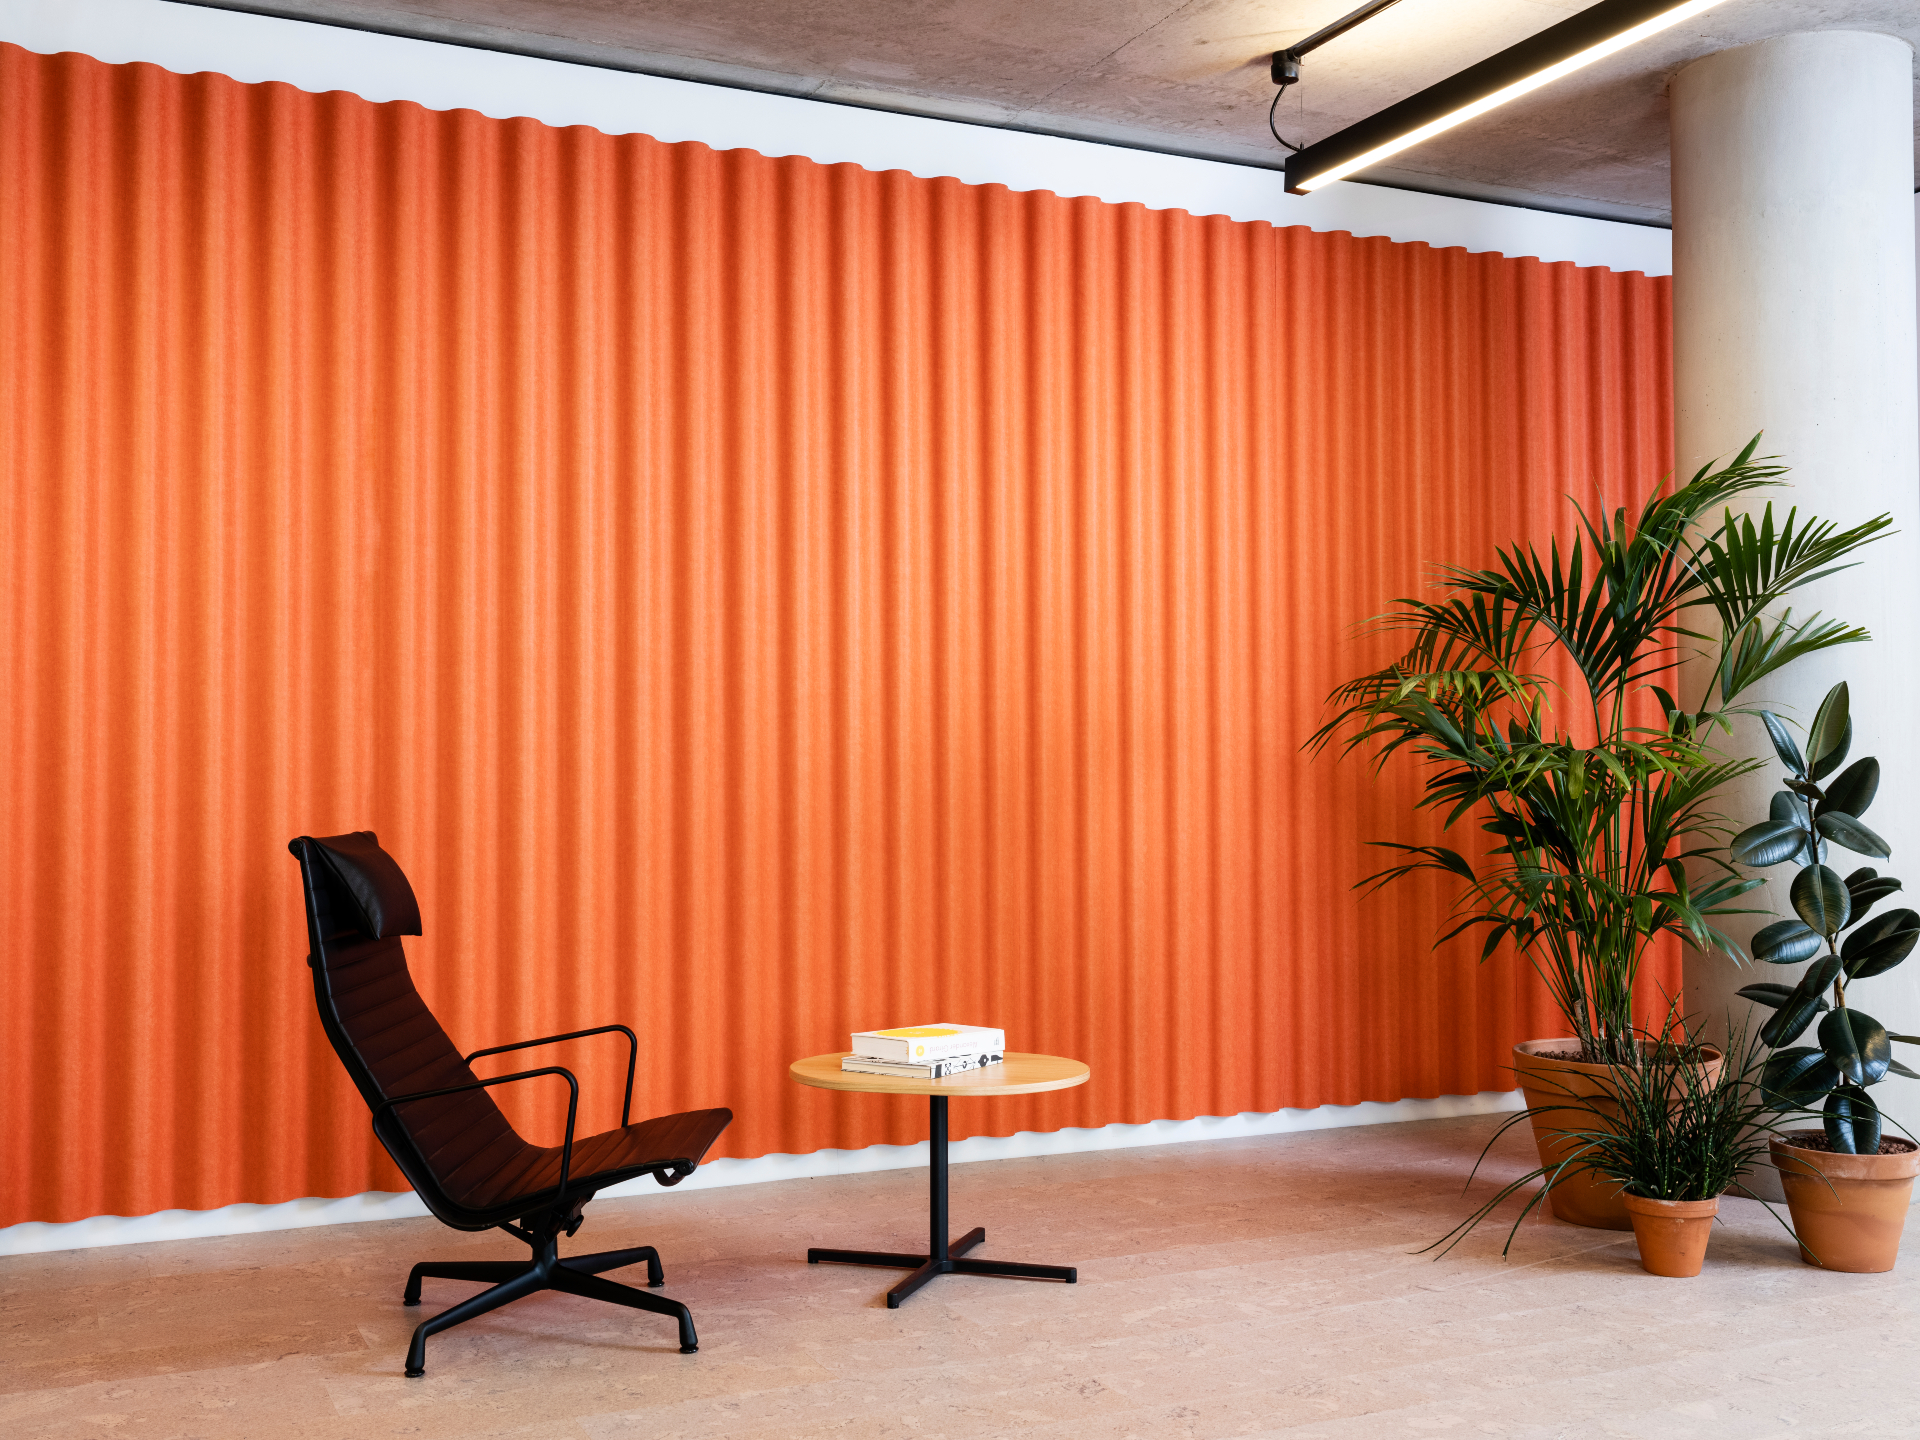 How to design an acoustic wall panel, by Jones & Partners.